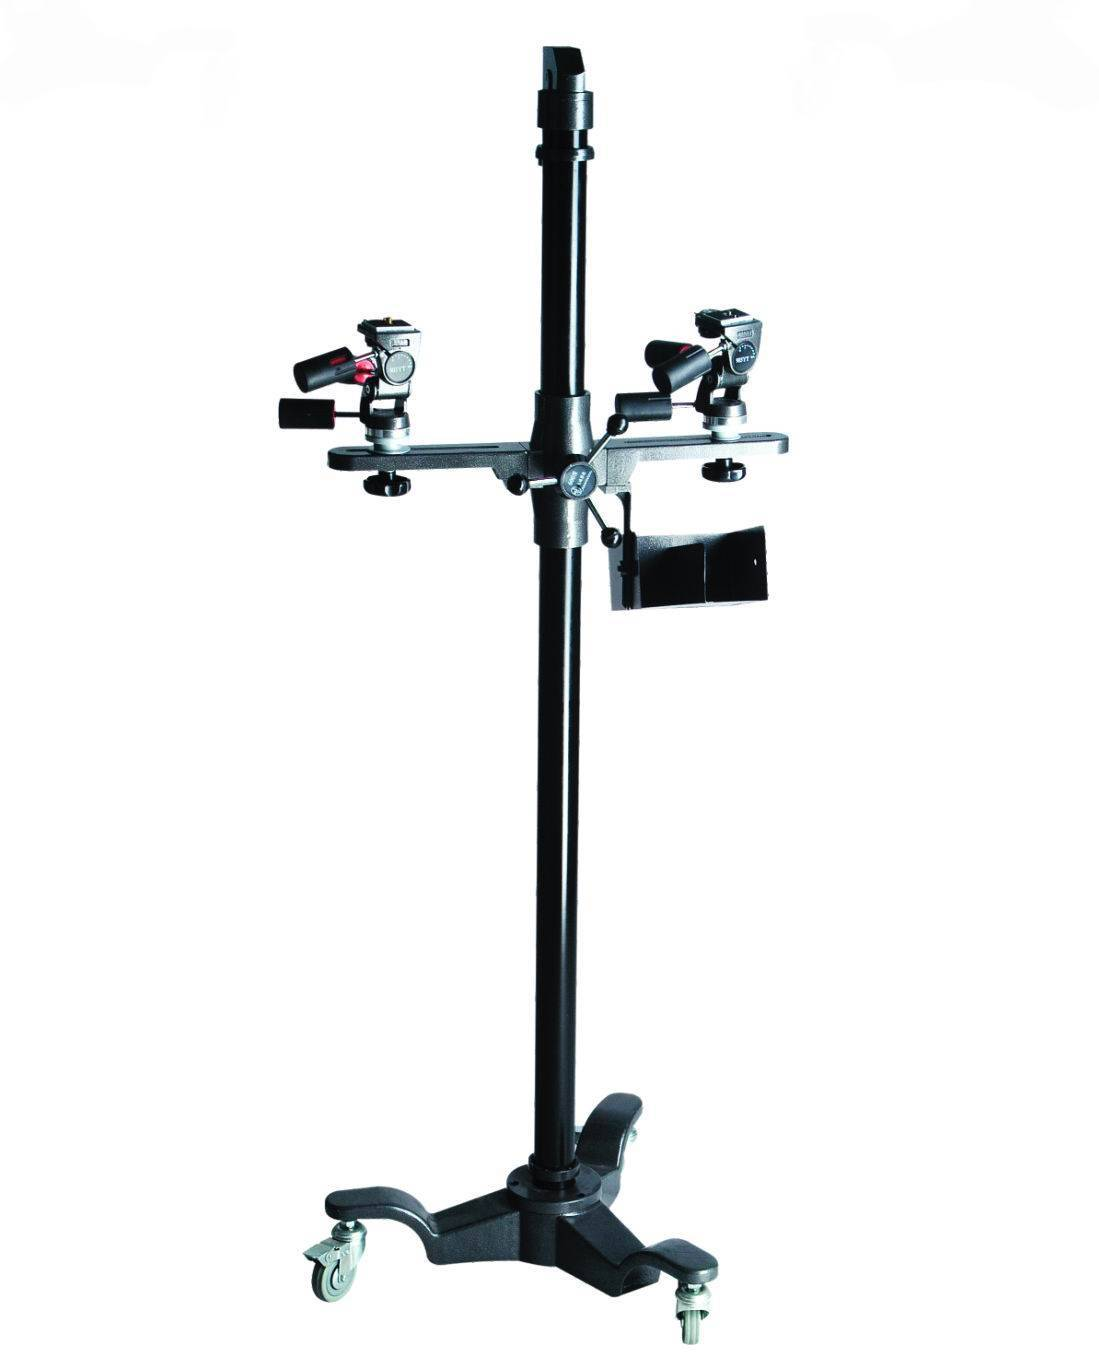 Studio Camera Stand with Counter Balanced Cross Arm,20kg Loaded Capacity